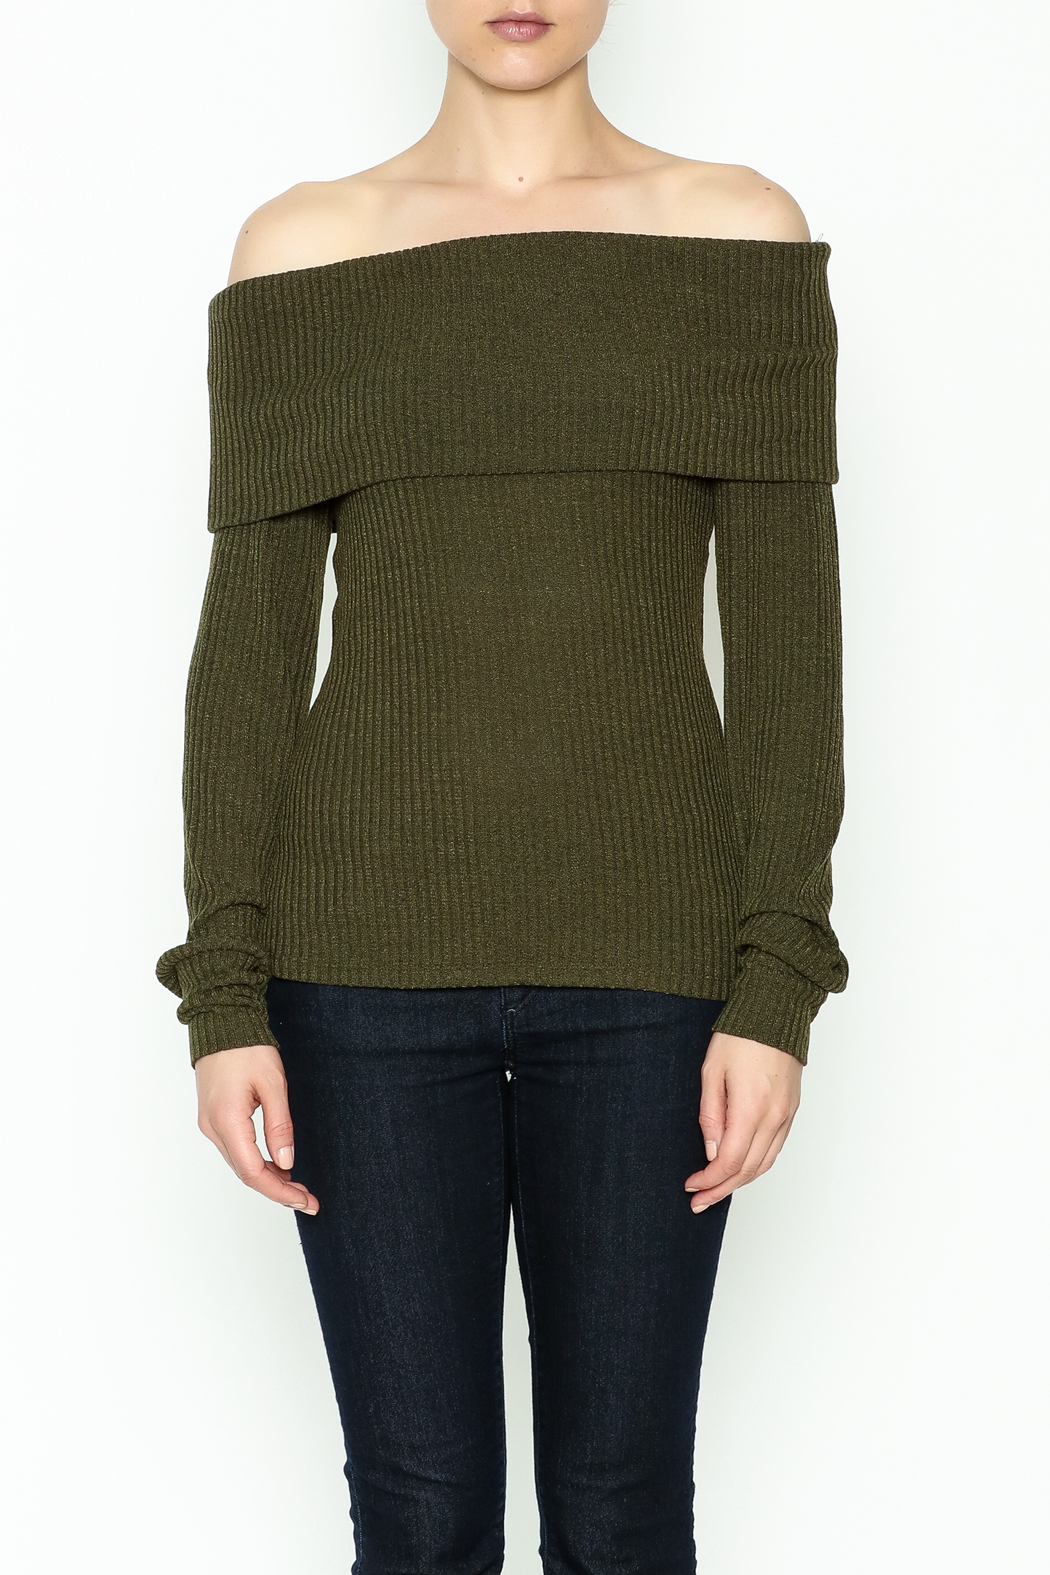 HYFVE Lace Up Back Sweater - Front Full Image